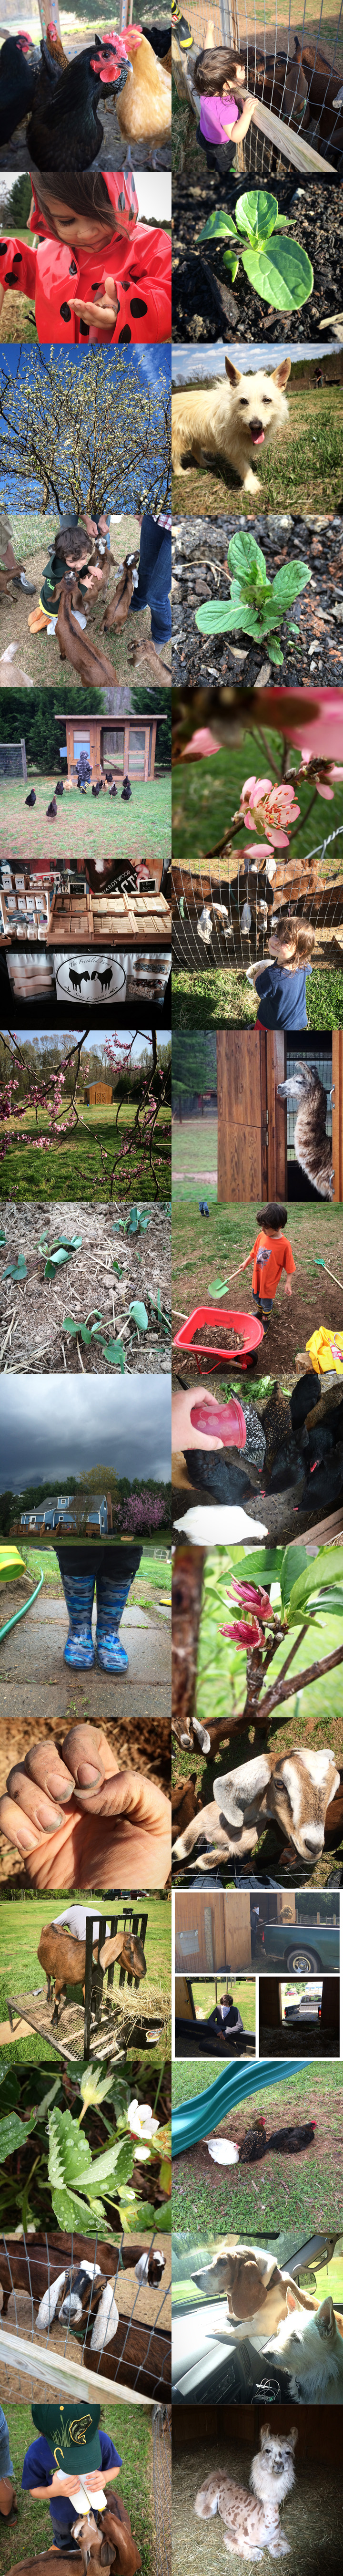 365 Project - April - A photo a day from The Freckled Farm